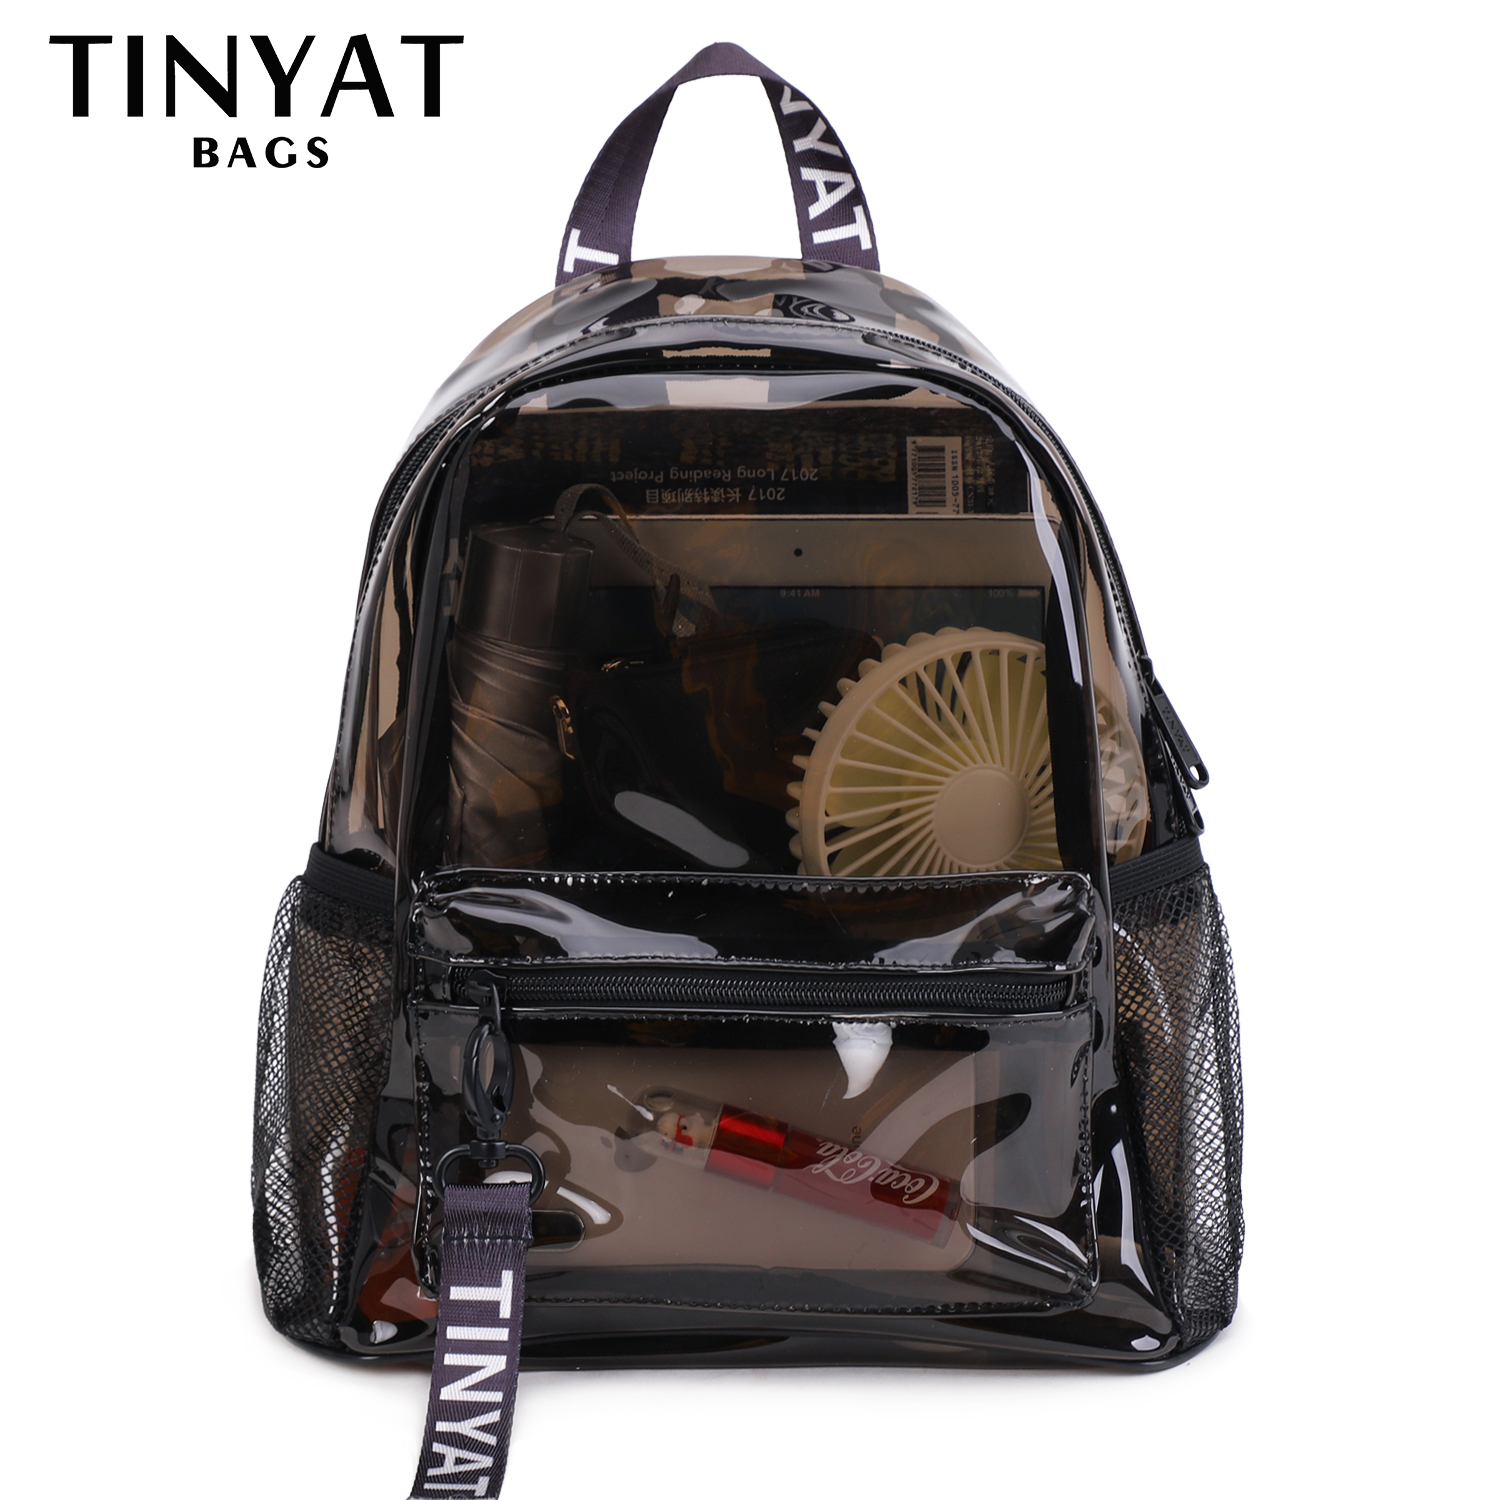 TINTAT Fashion Clear PVC Women Backpack New Trend Transparent Solid Backpack Travel School Backpack Bag for Girls Child Mochila